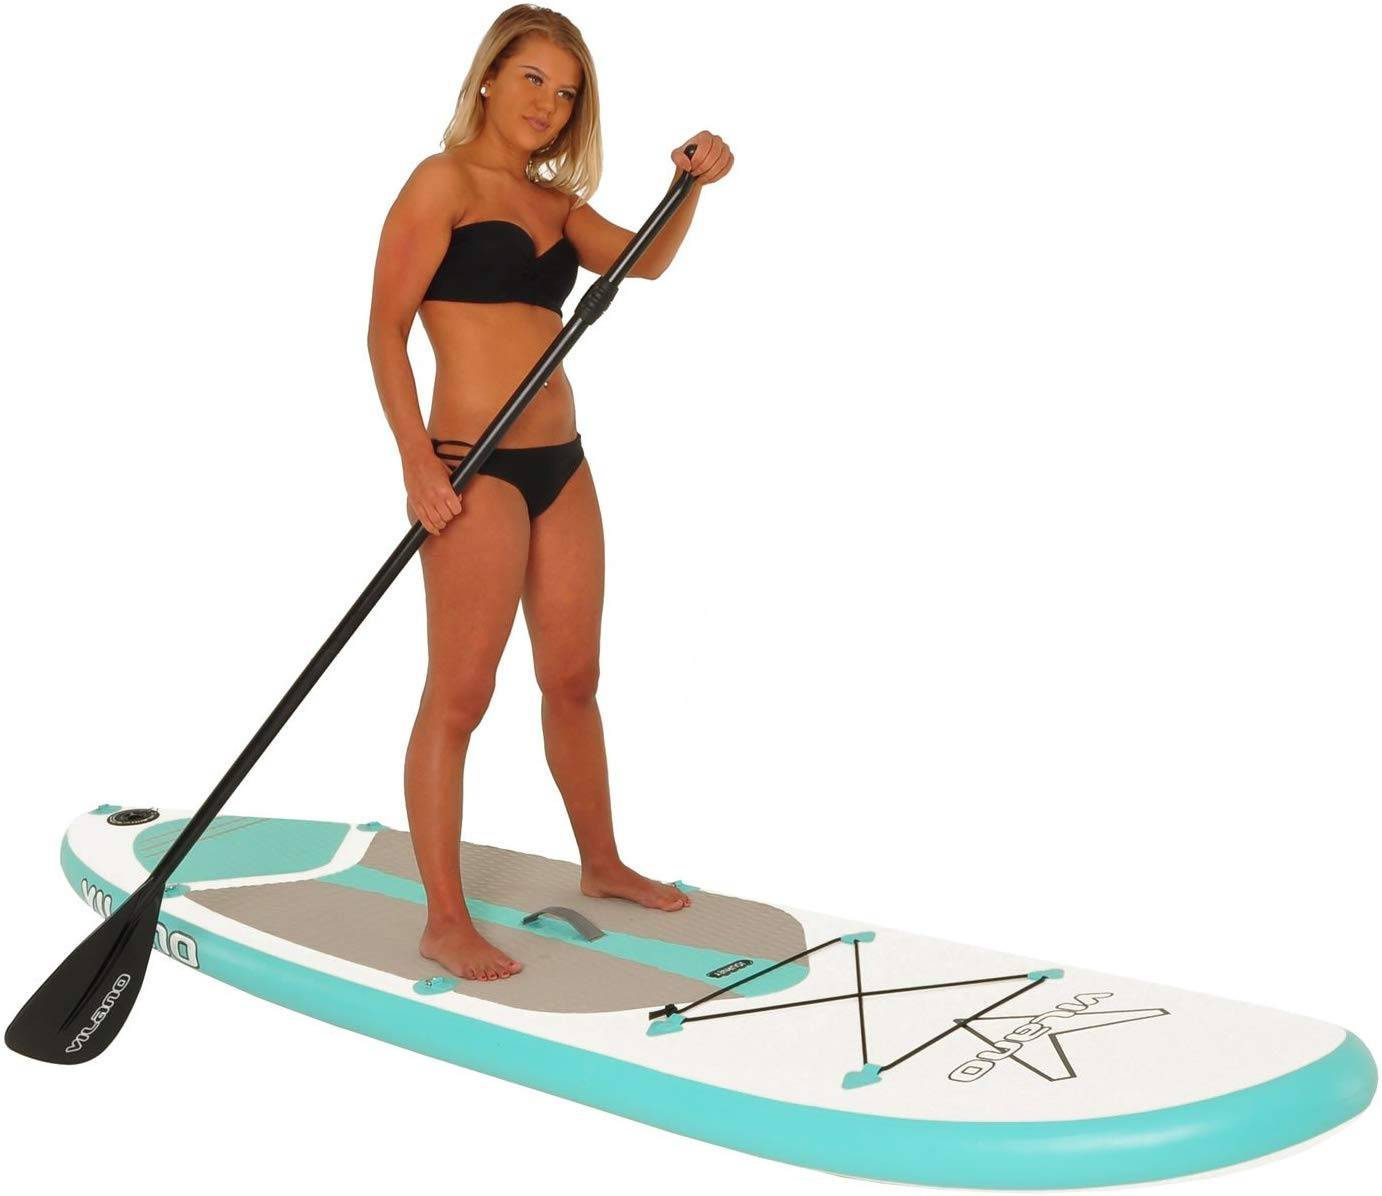 Vilano Journey Inflatable Stand Up - image Vilano-Journey-Inflatable-Stand-Up on https://supboardgear.com